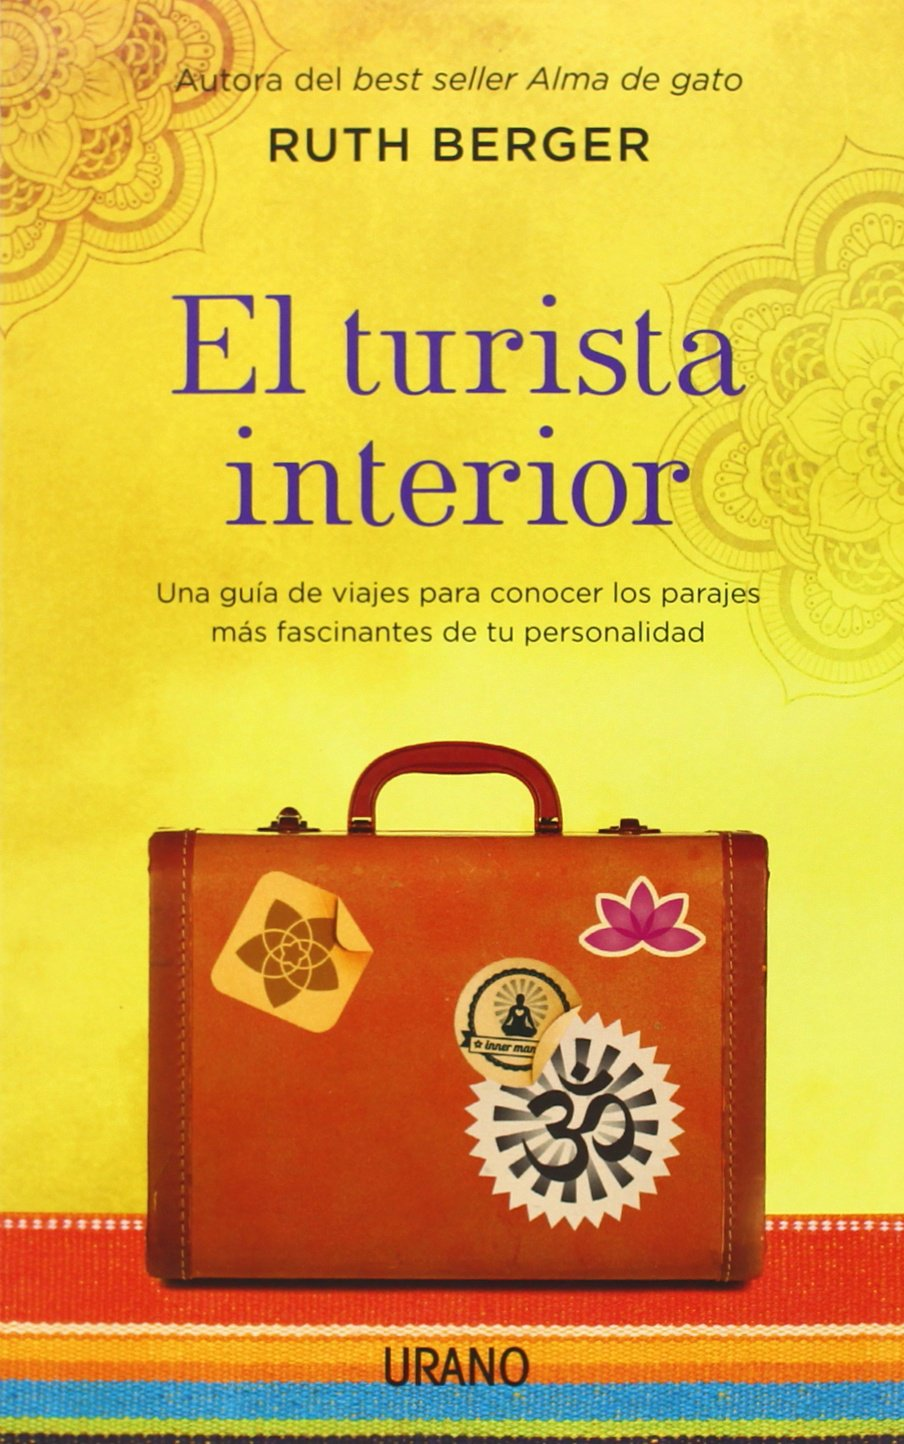 El Turista Interior (Spanish Edition) (Spanish) Paperback – July 31, 2014